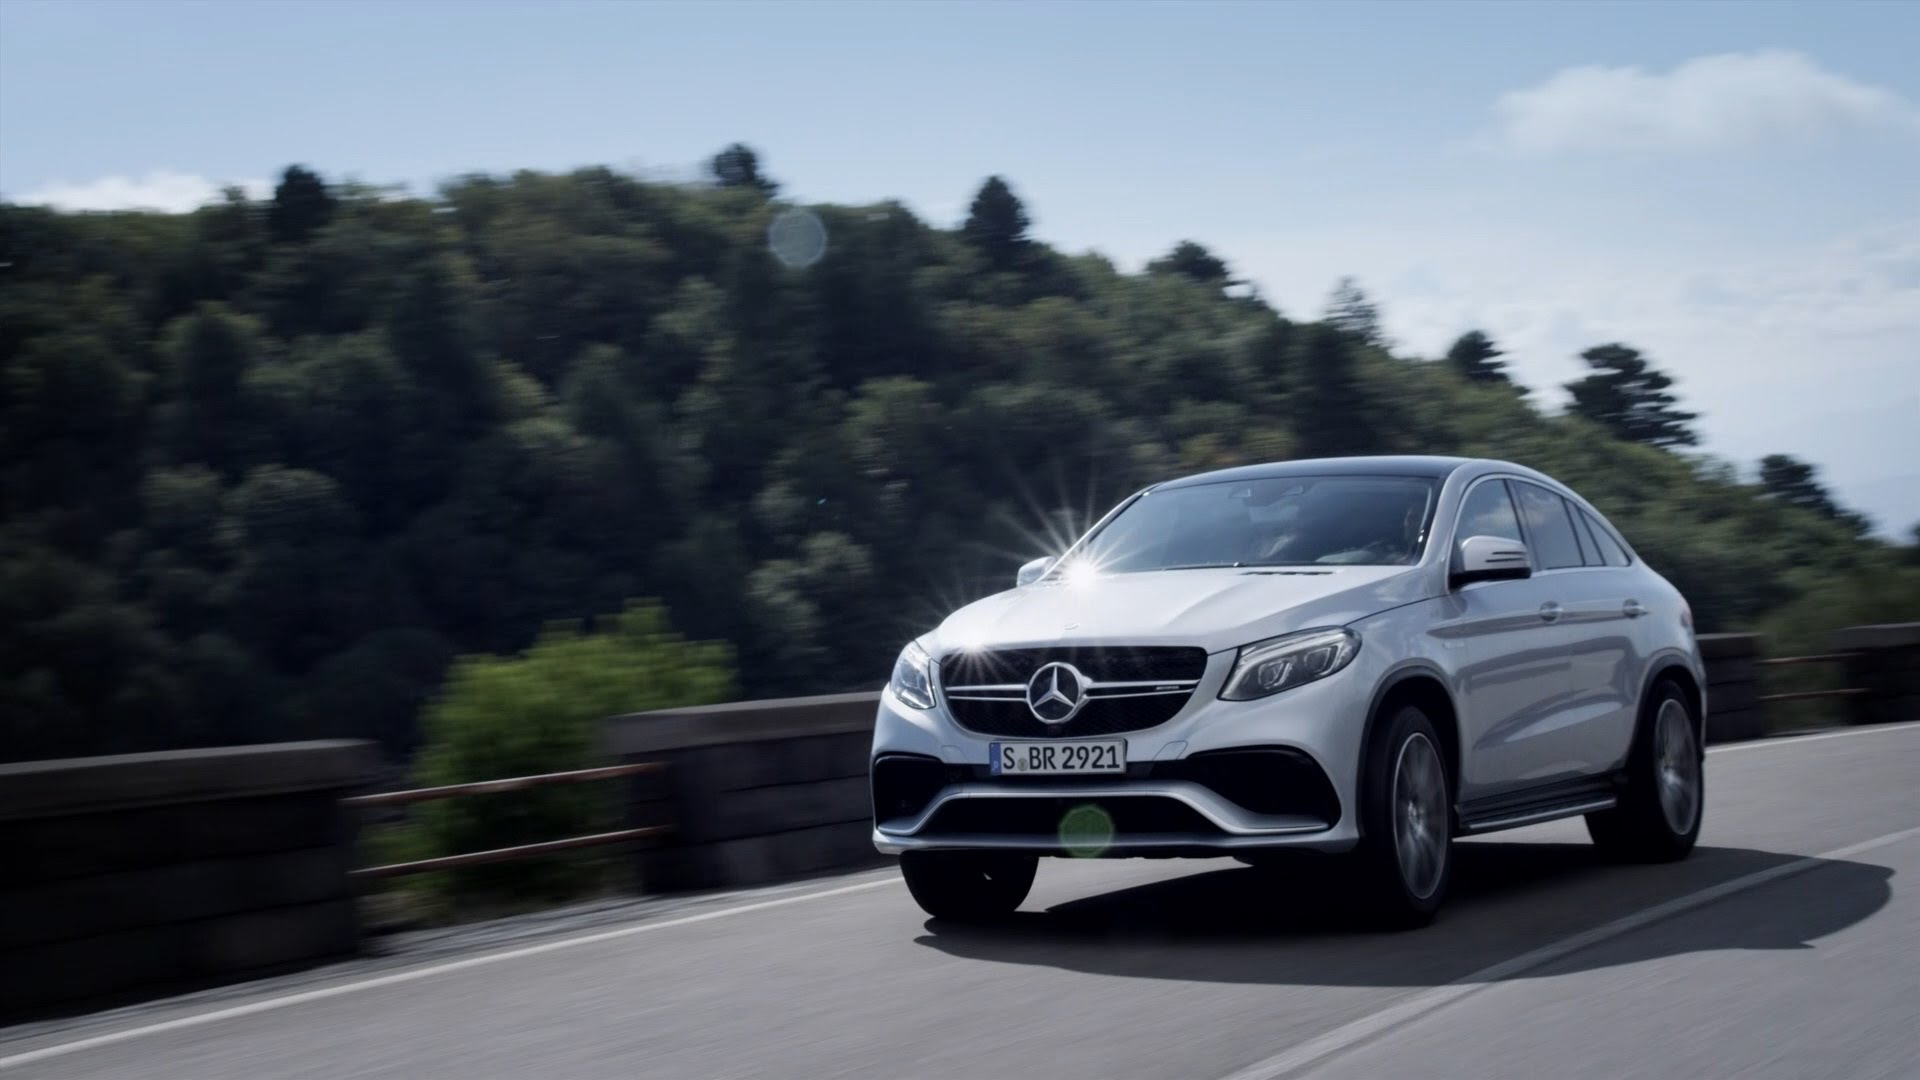 Mercedes Benz Gle Coupe 2016 Hd Wallpapers Free Download